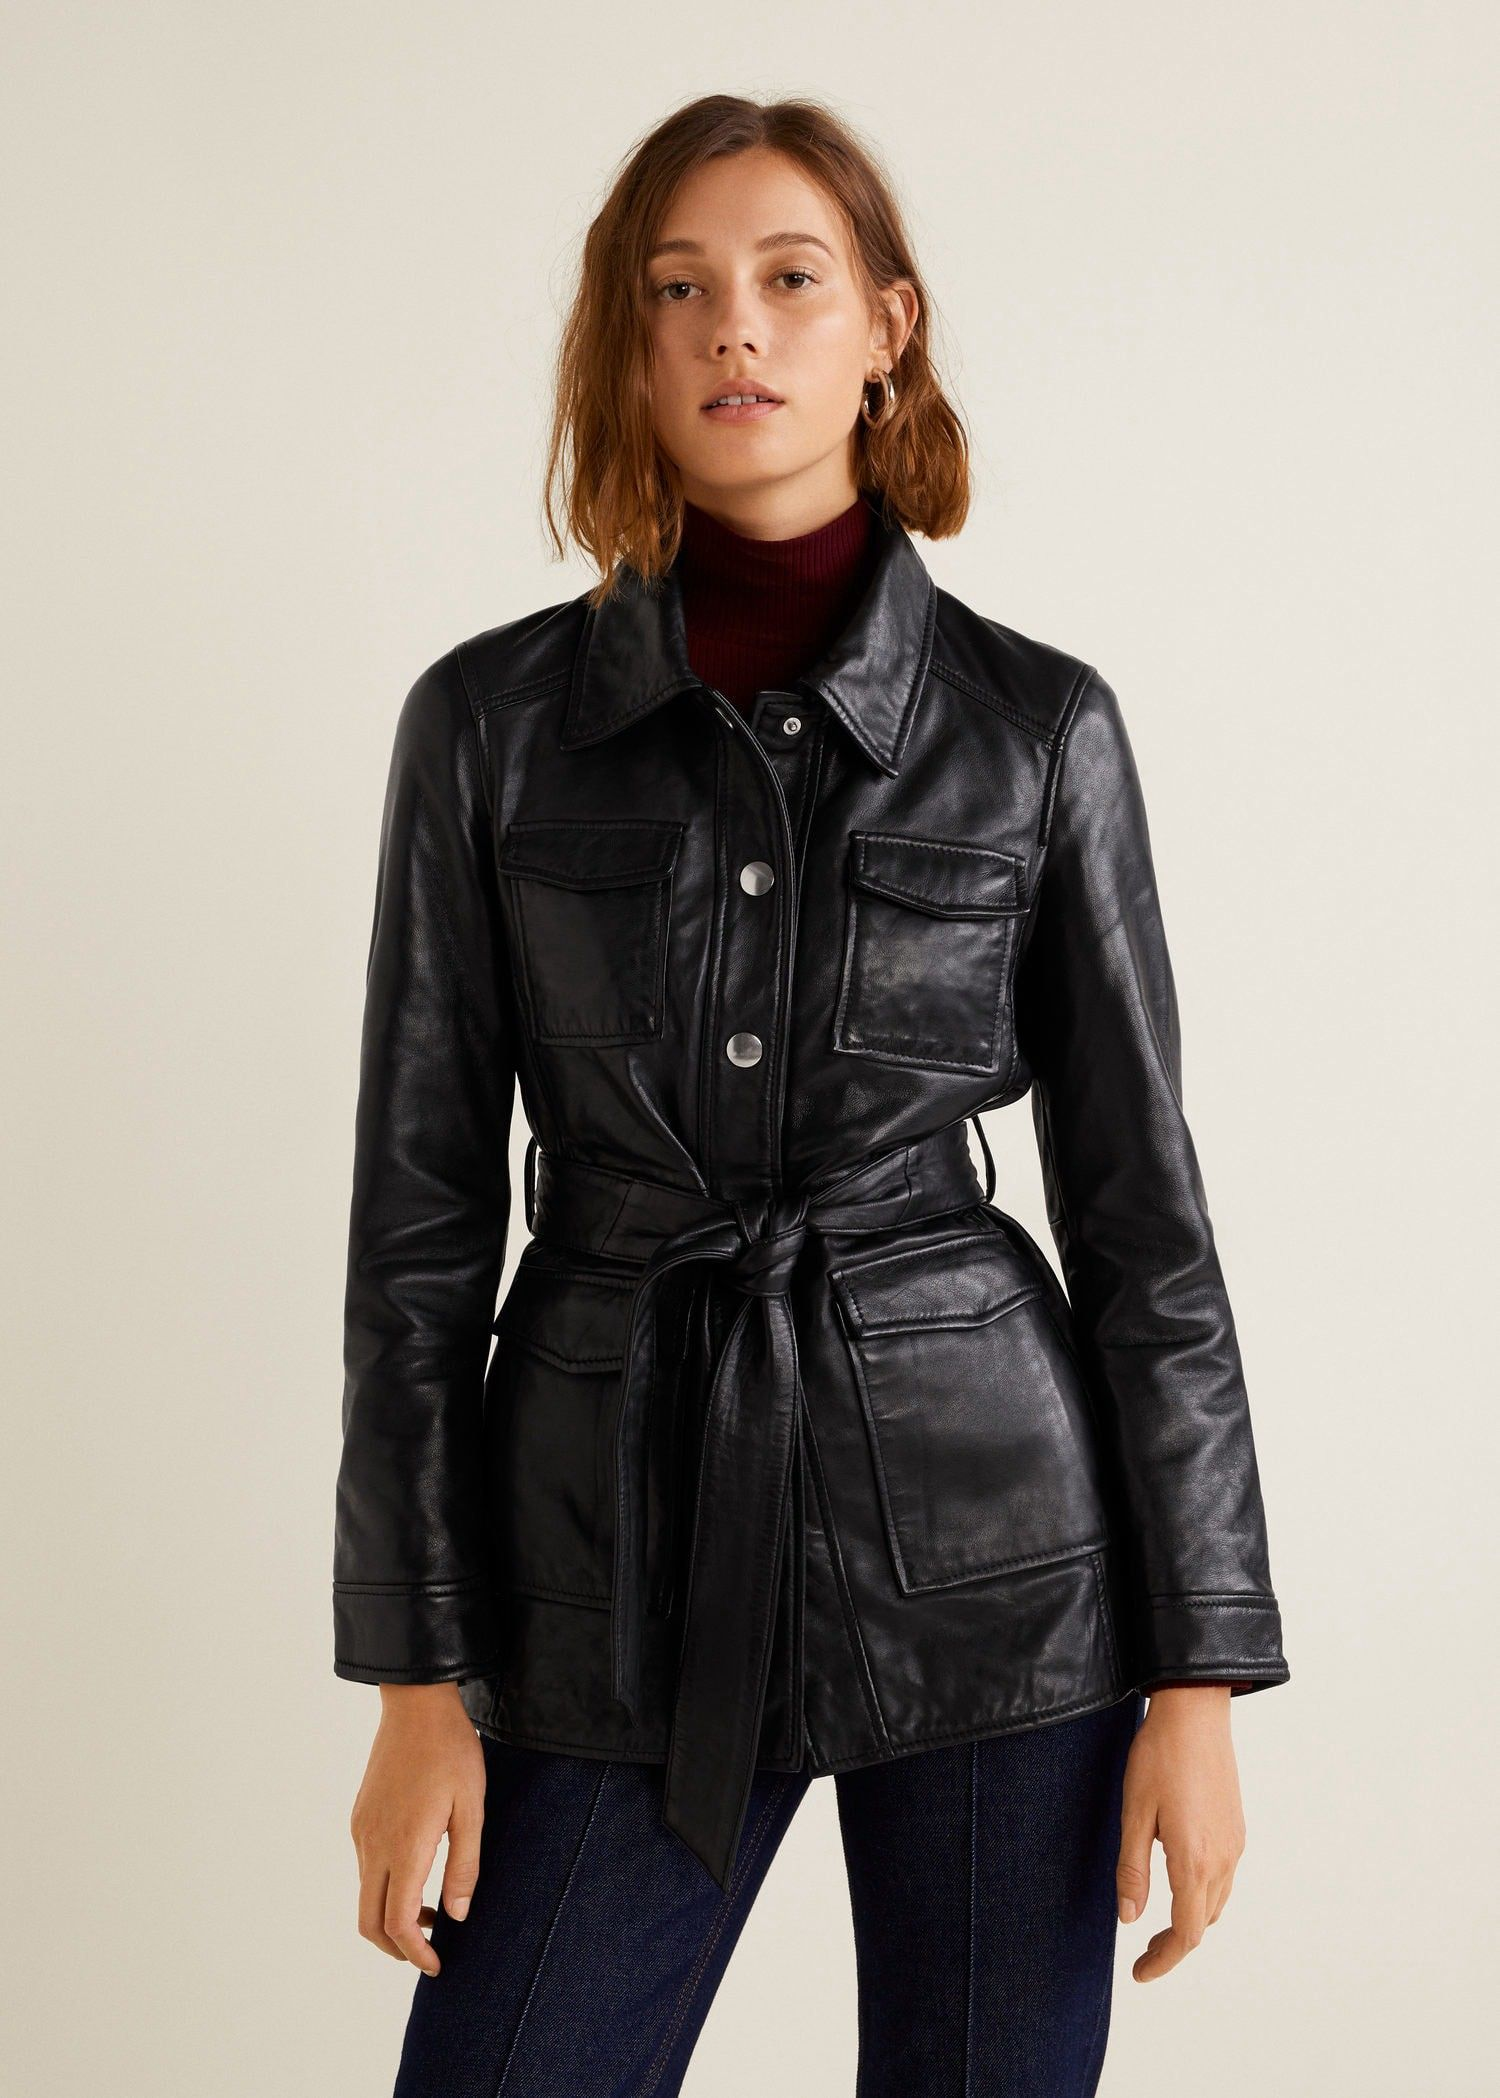 5ad932c2115 Mango Pockets Leather Jacket - Black Xxs in 2019